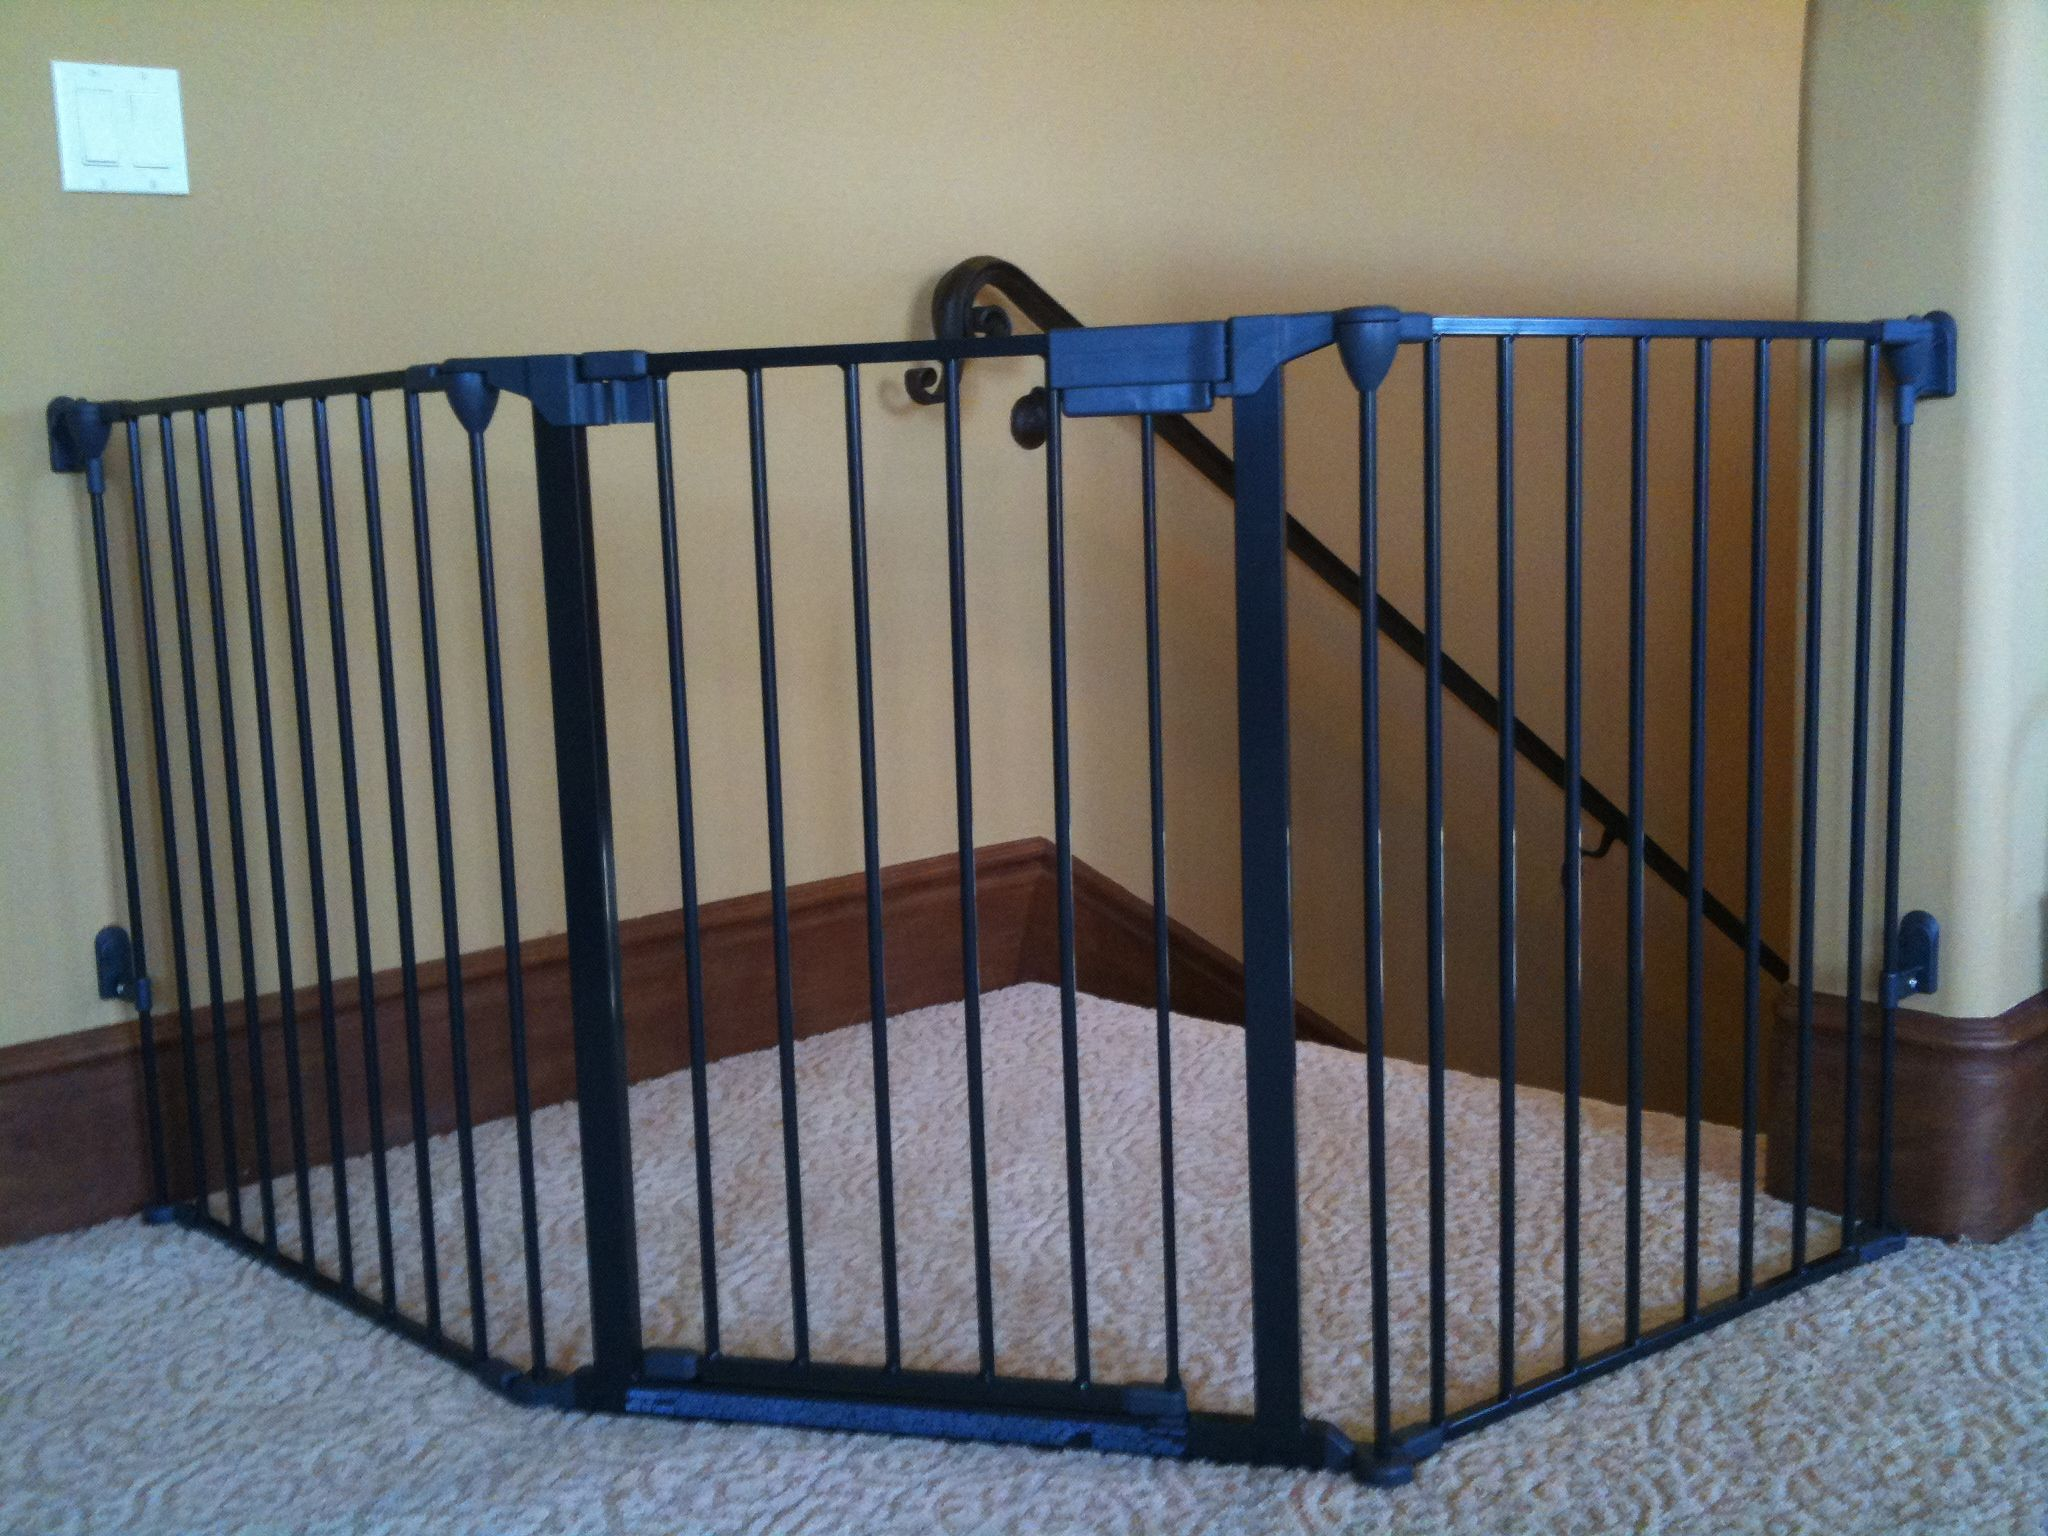 Pin By Sanny On Home Interior Pinterest Baby Gates Diy Baby